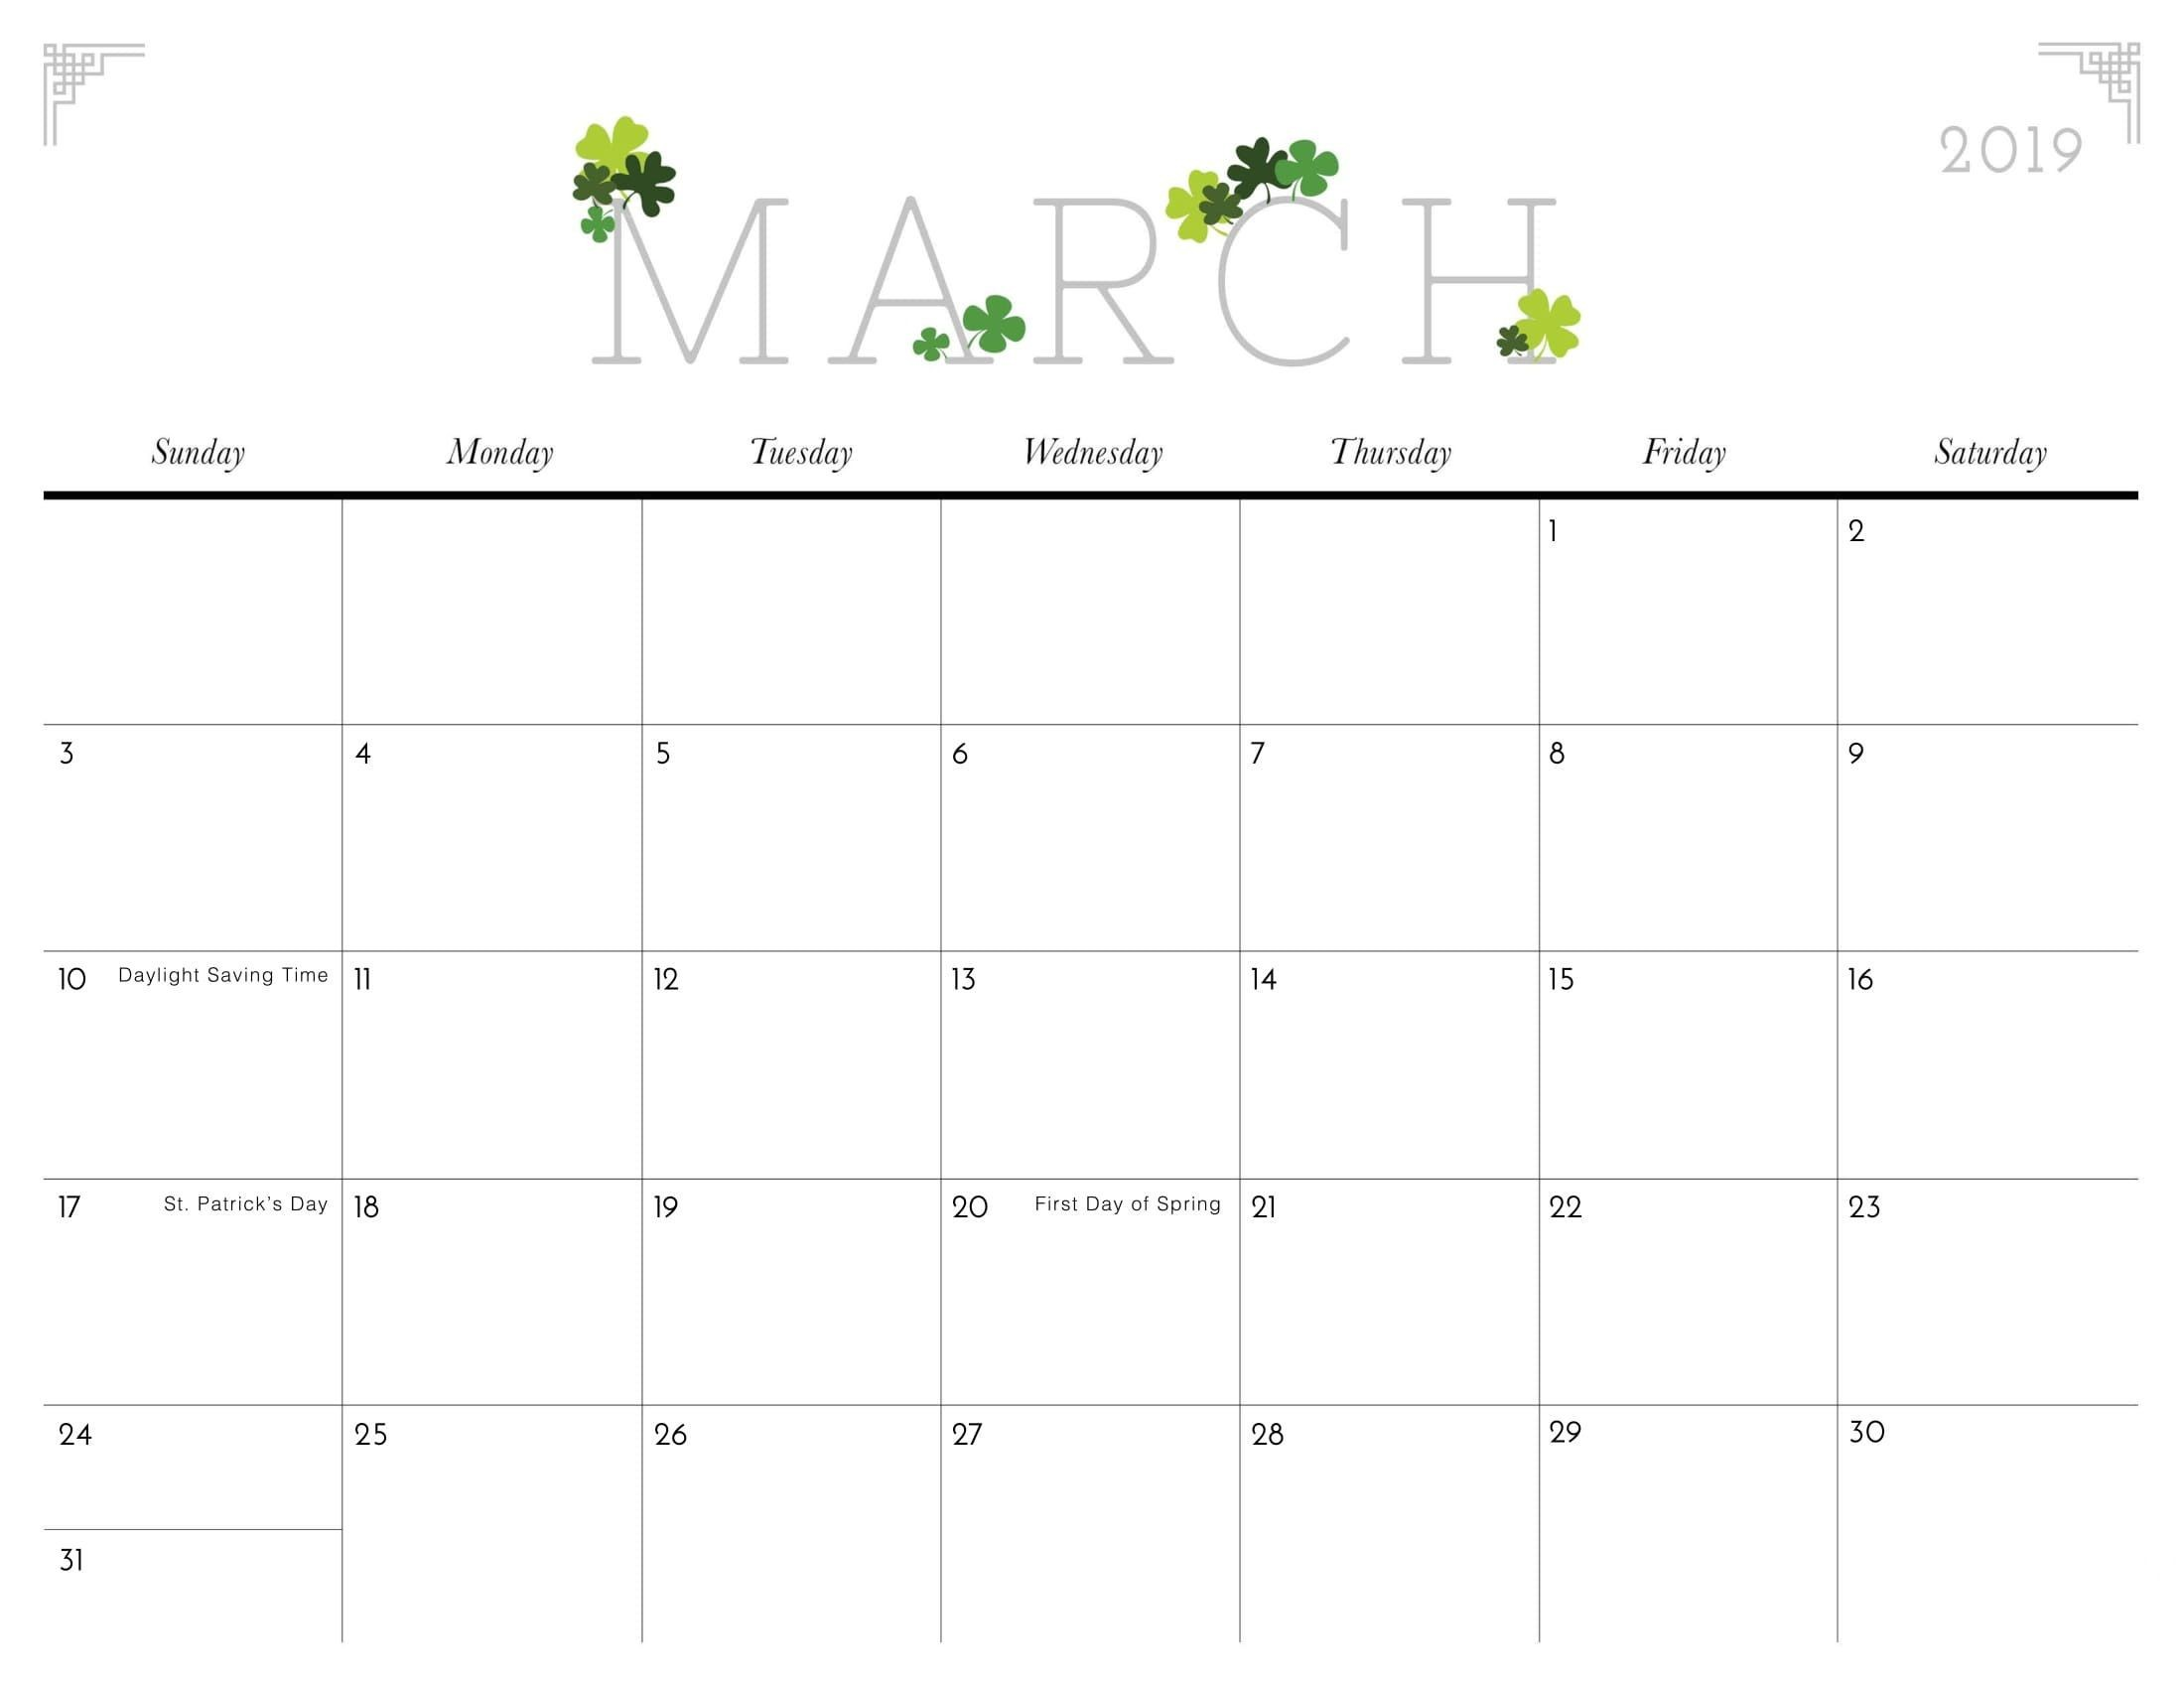 2019 March Calendar Malaysia Actual Cute March 2019 Calendar Template Of 2019 March Calendar Malaysia Más Actual 2019 softail Motorcycles